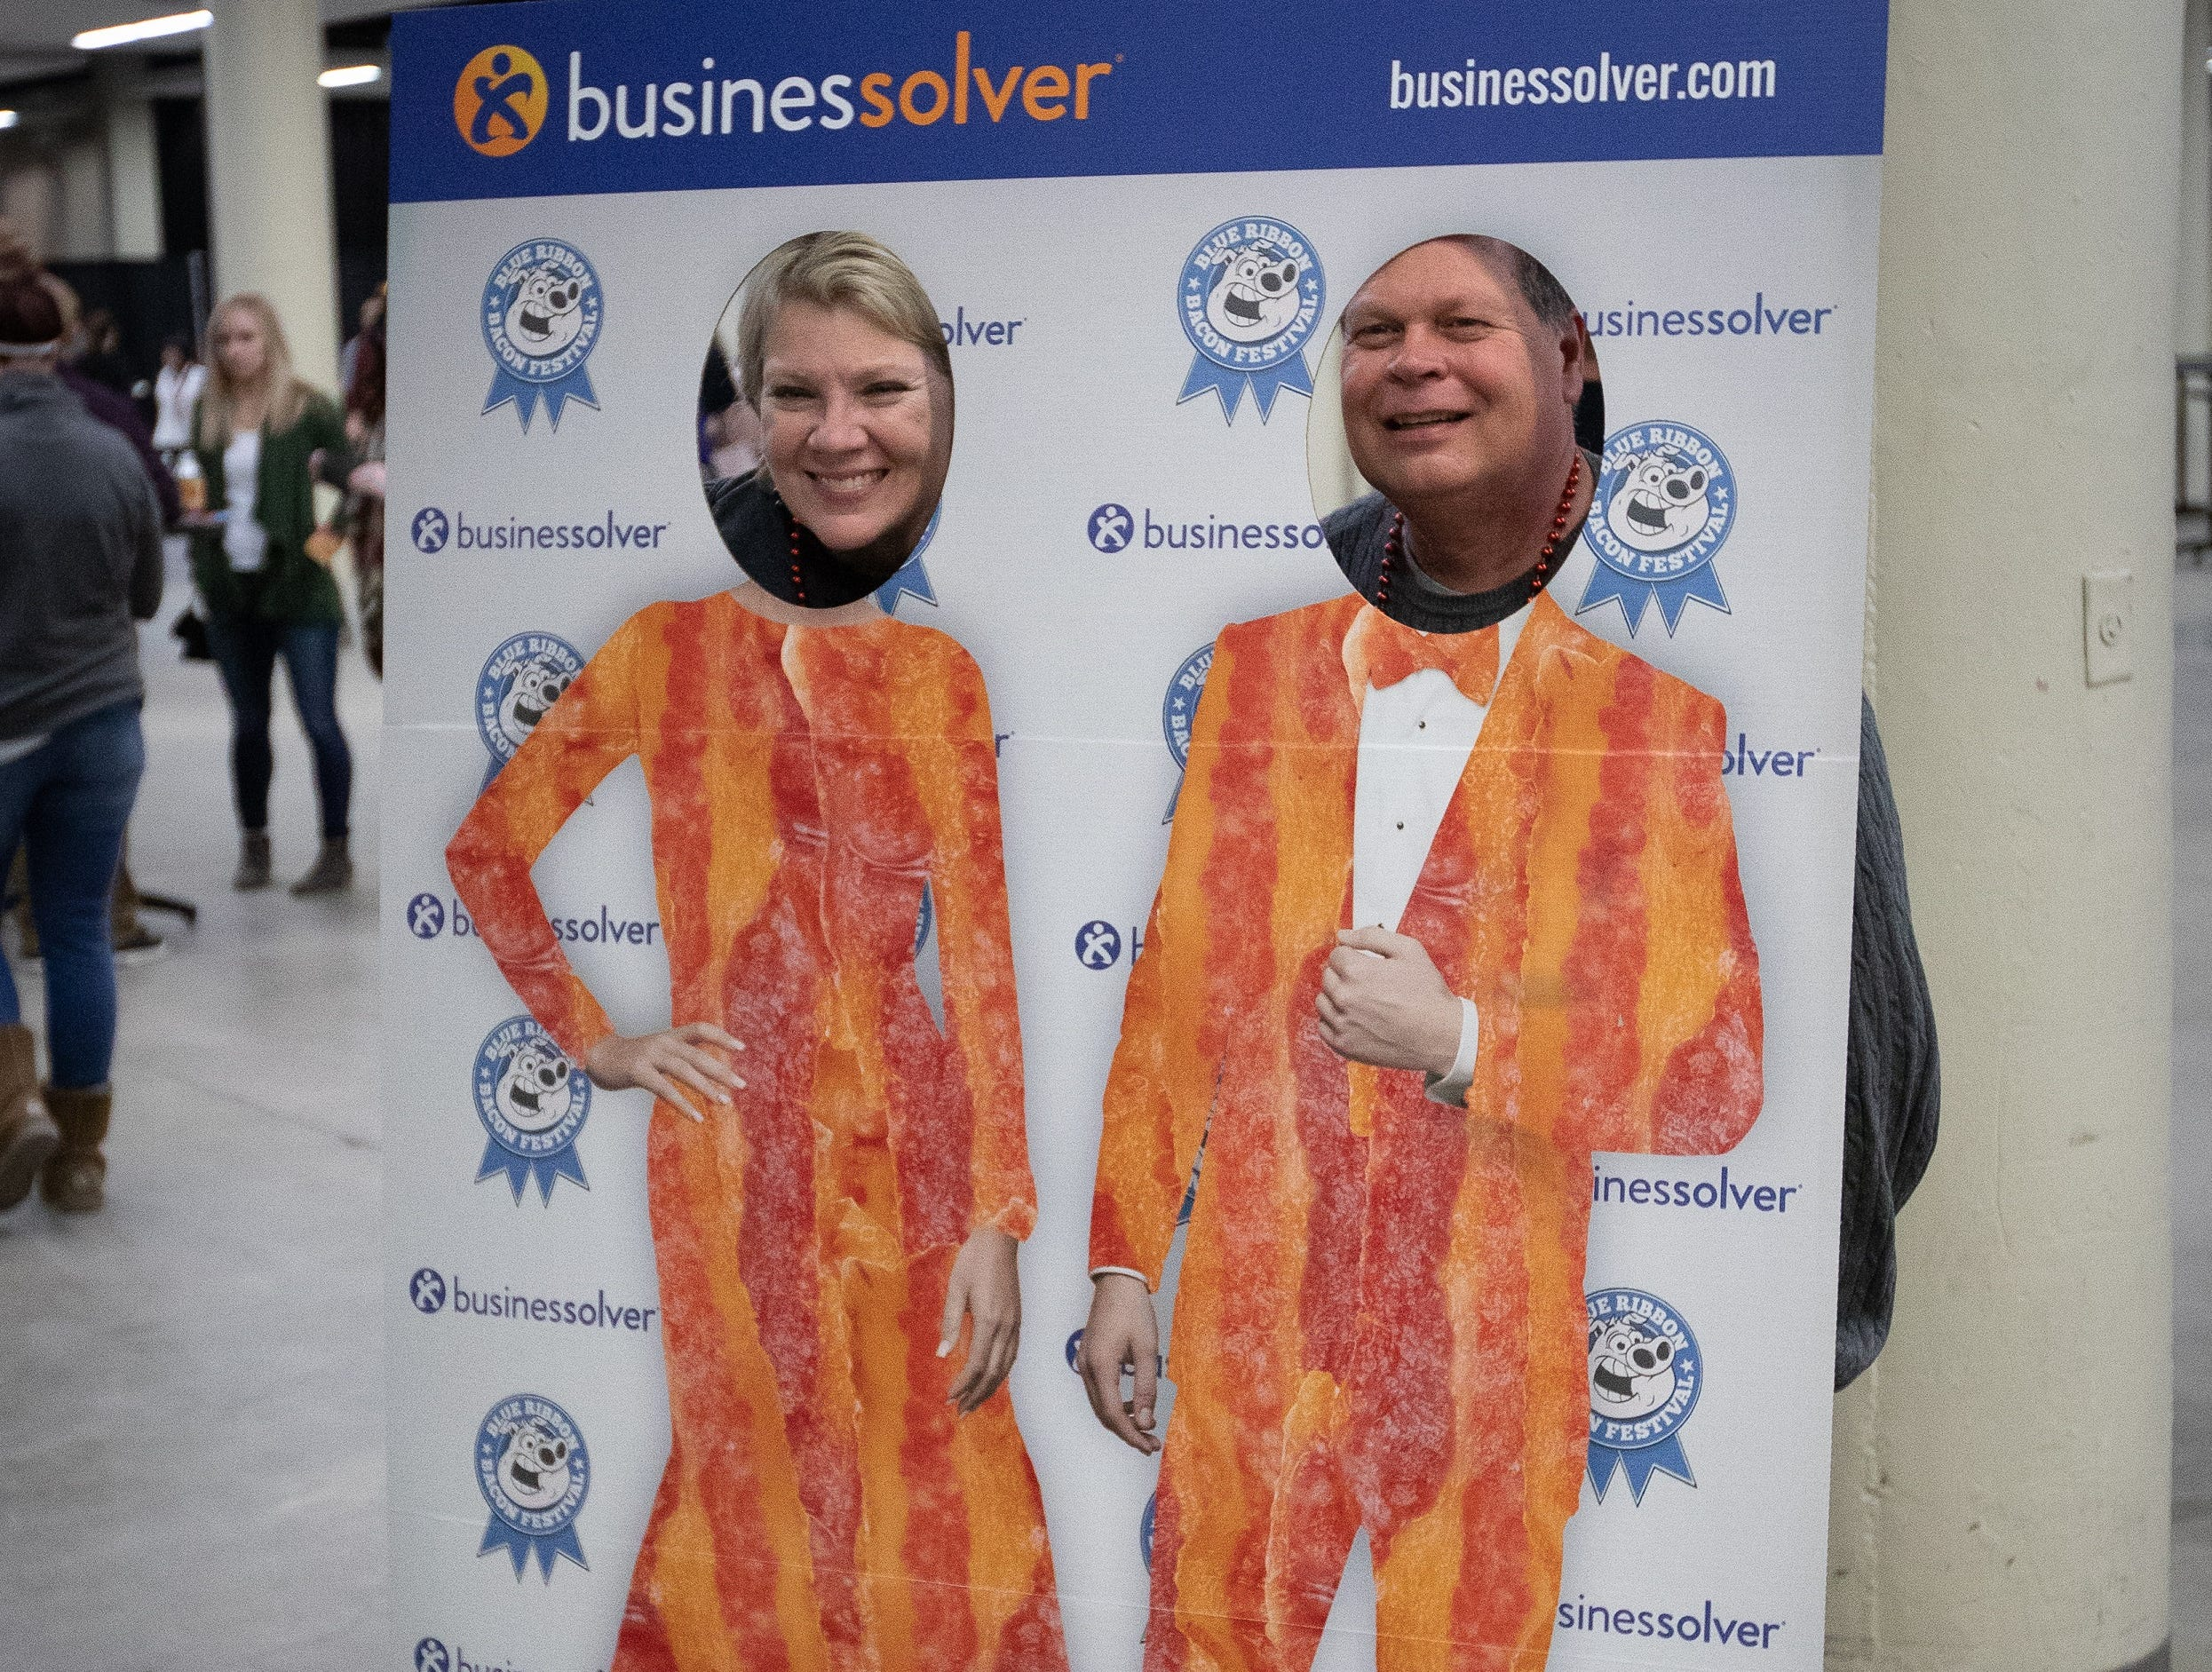 Carol and Jeff Paxhia, of Waukee, pose for a photo during the Bacon Fest at Hy-Vee Hall on Feb. 16, 2019 in Des Moines, Iowa.